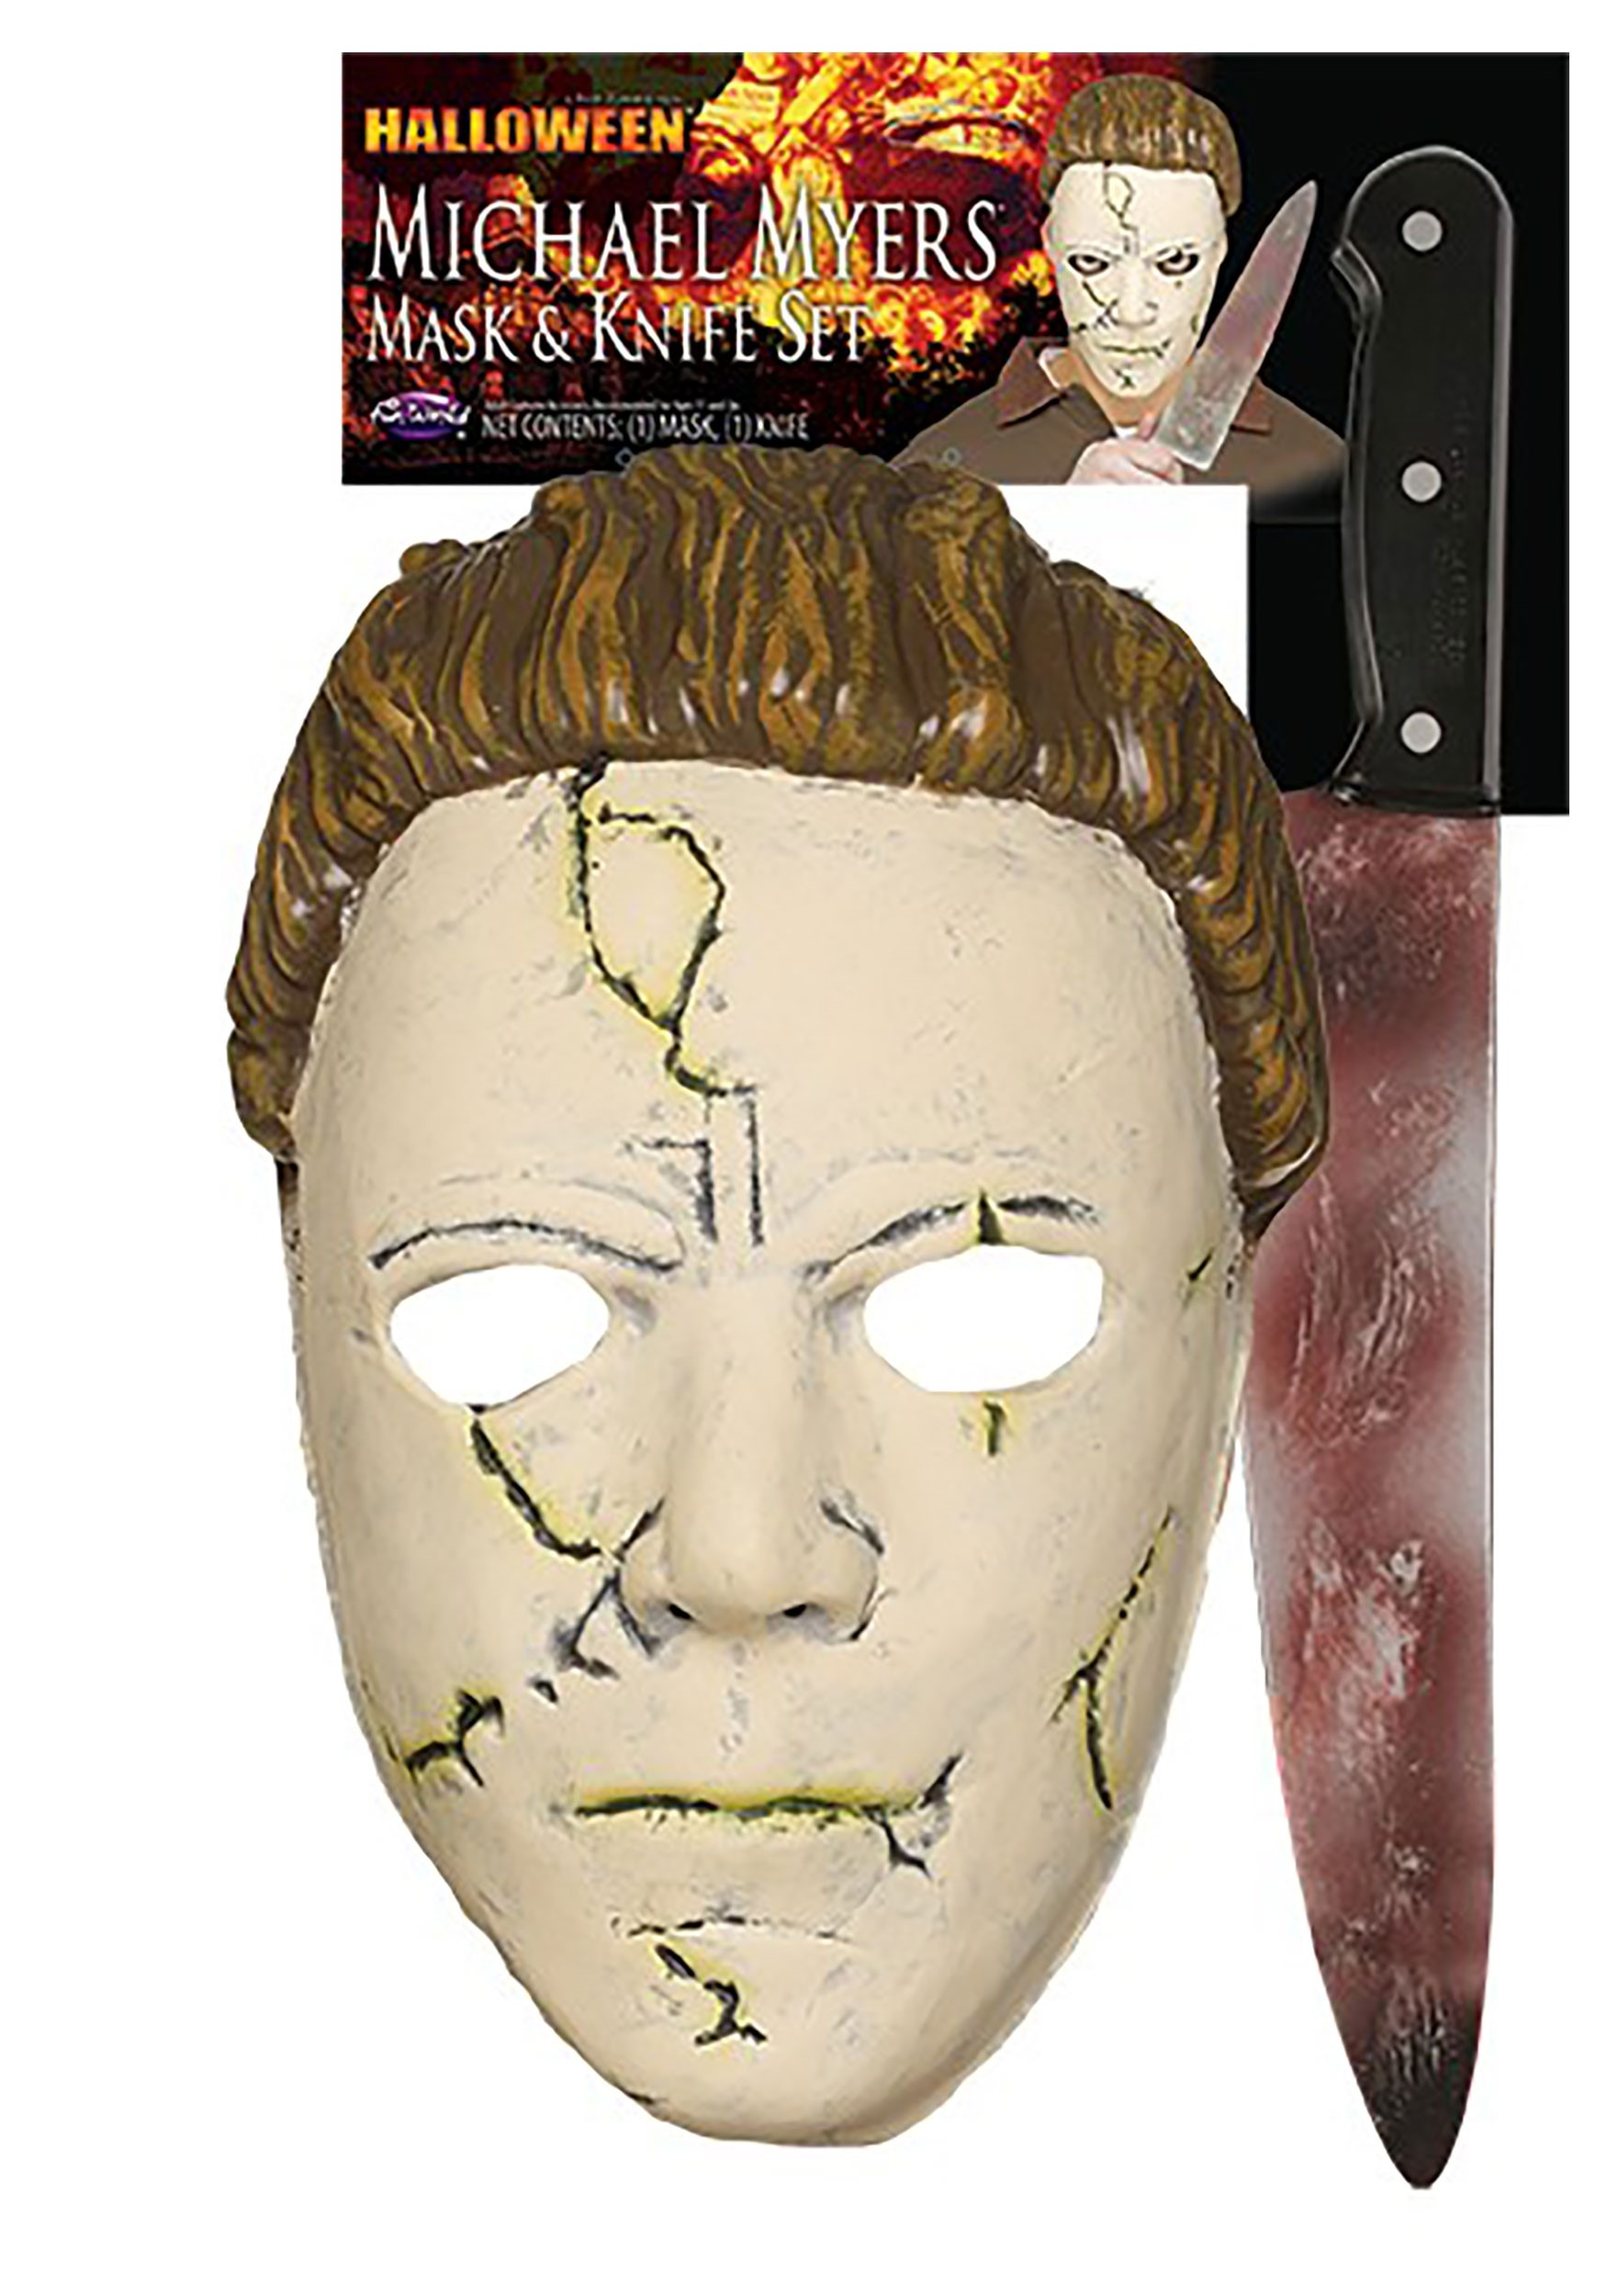 Michael Myers Halloween Rob Zombie Resilient Mask And Knife